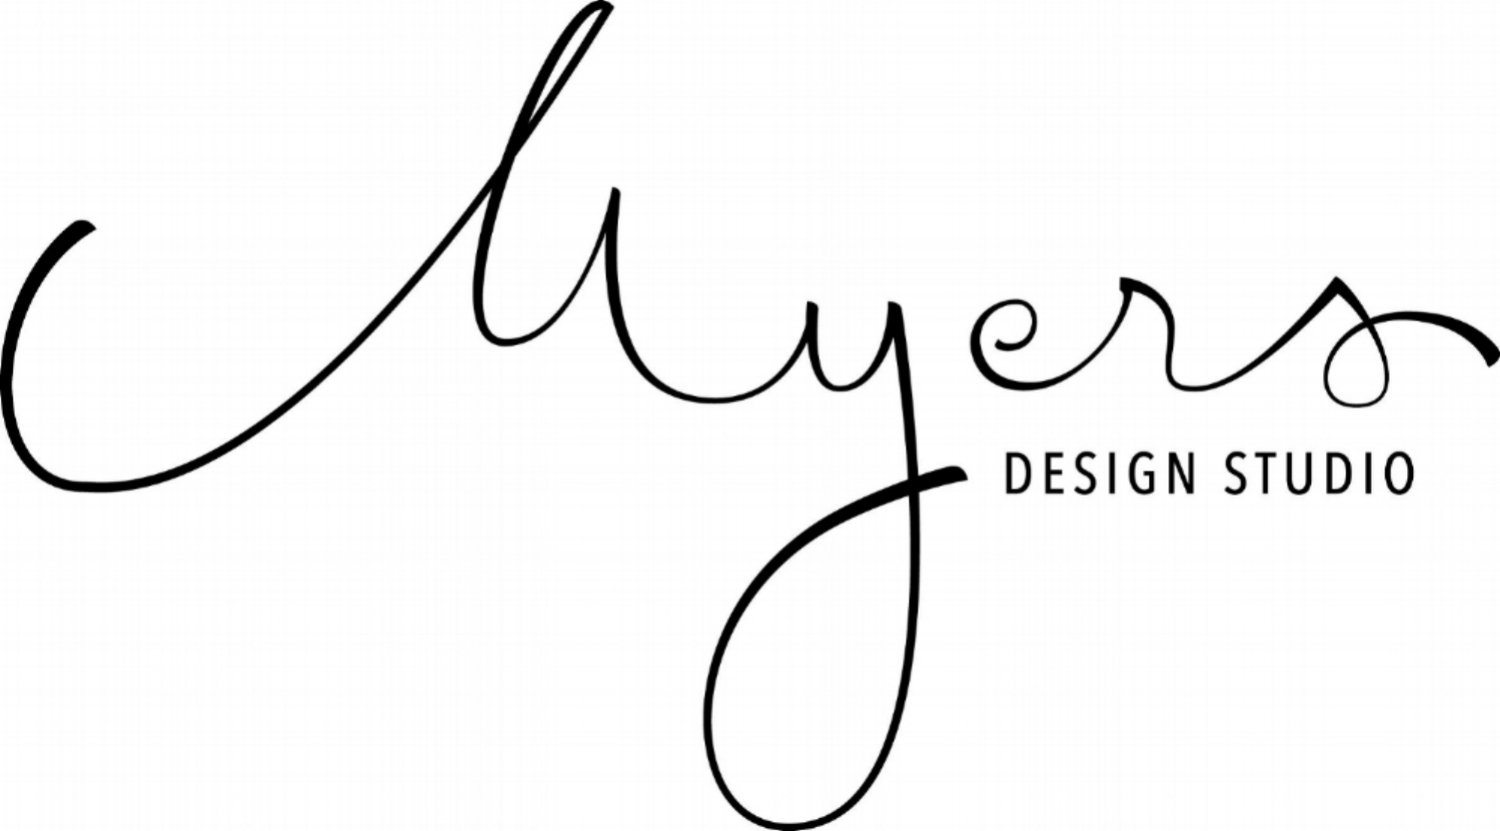 Myers Design Studio